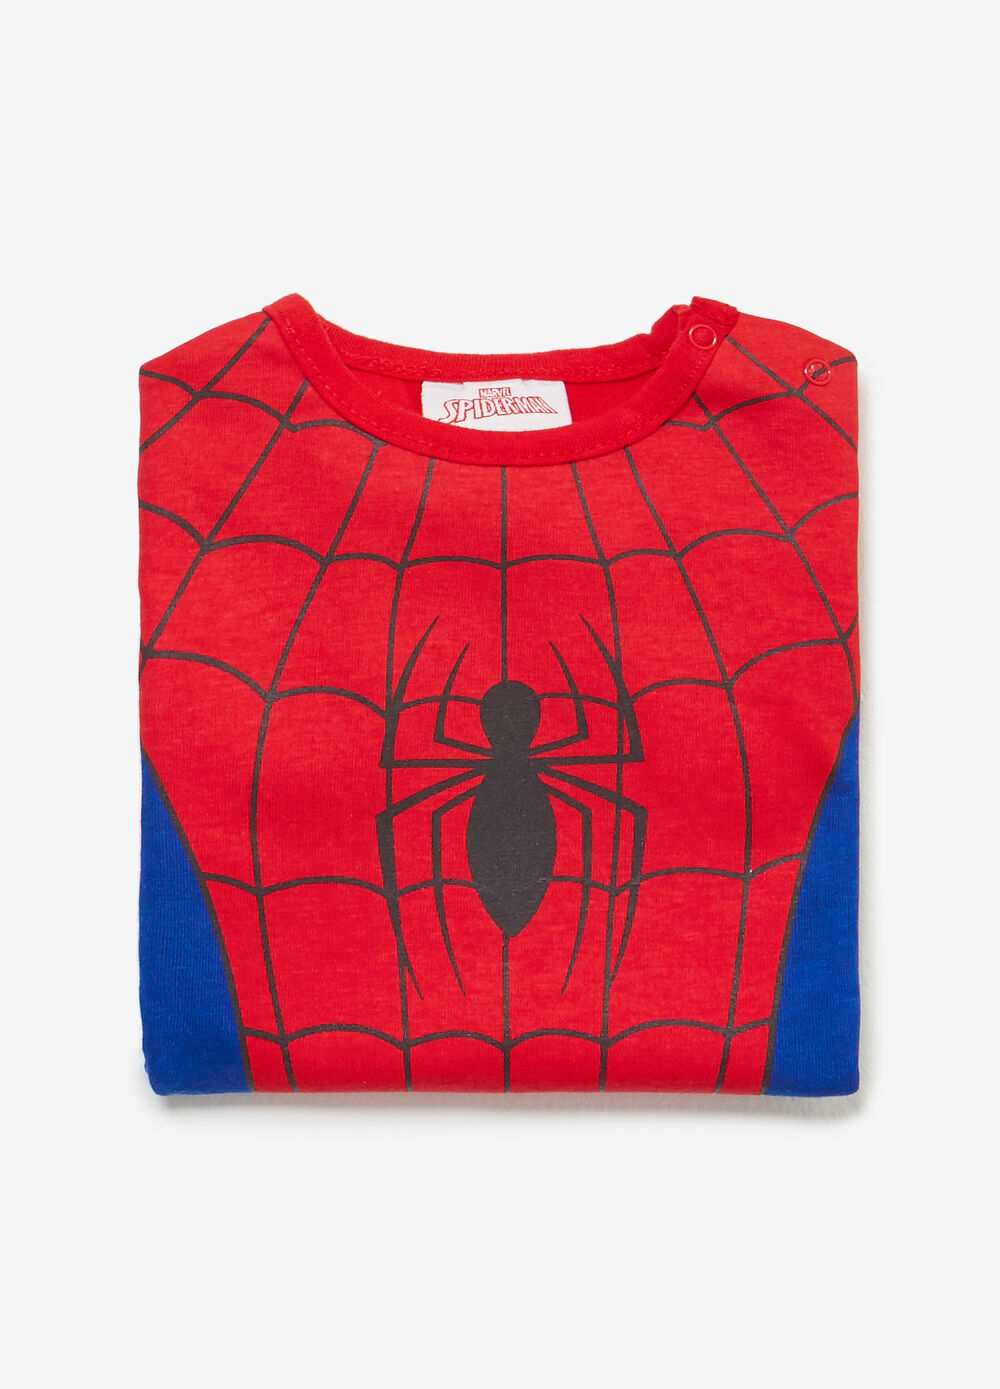 100% cotton Spiderman bodysuit